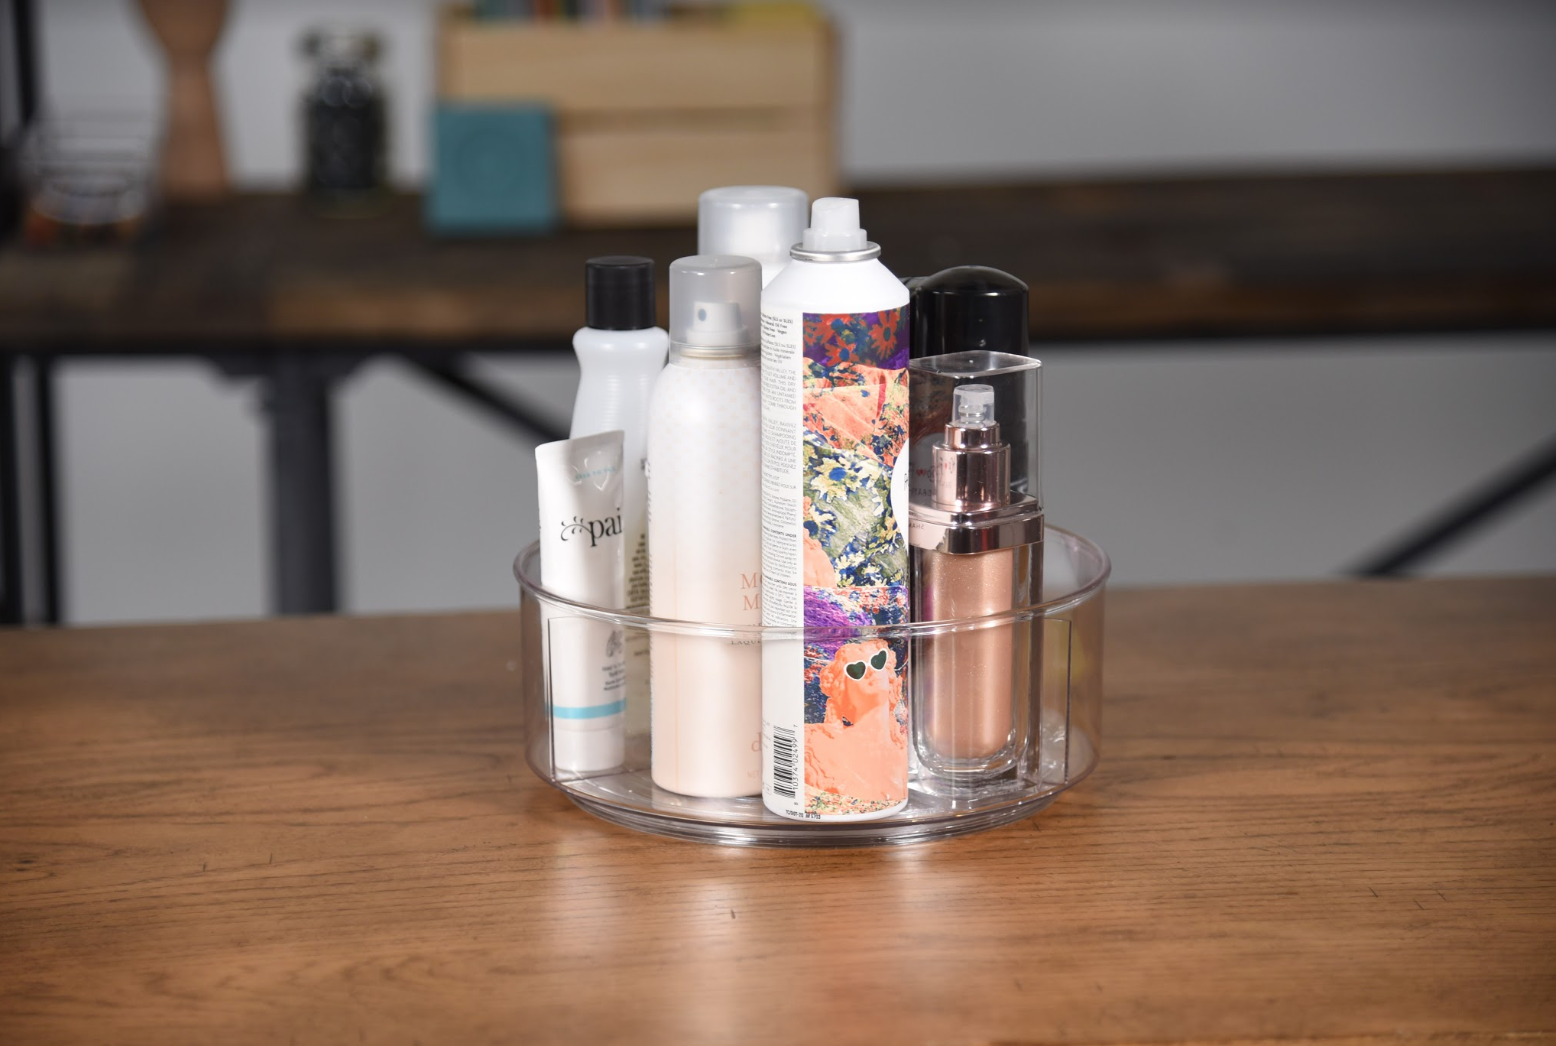 beauty product in a lazy susan